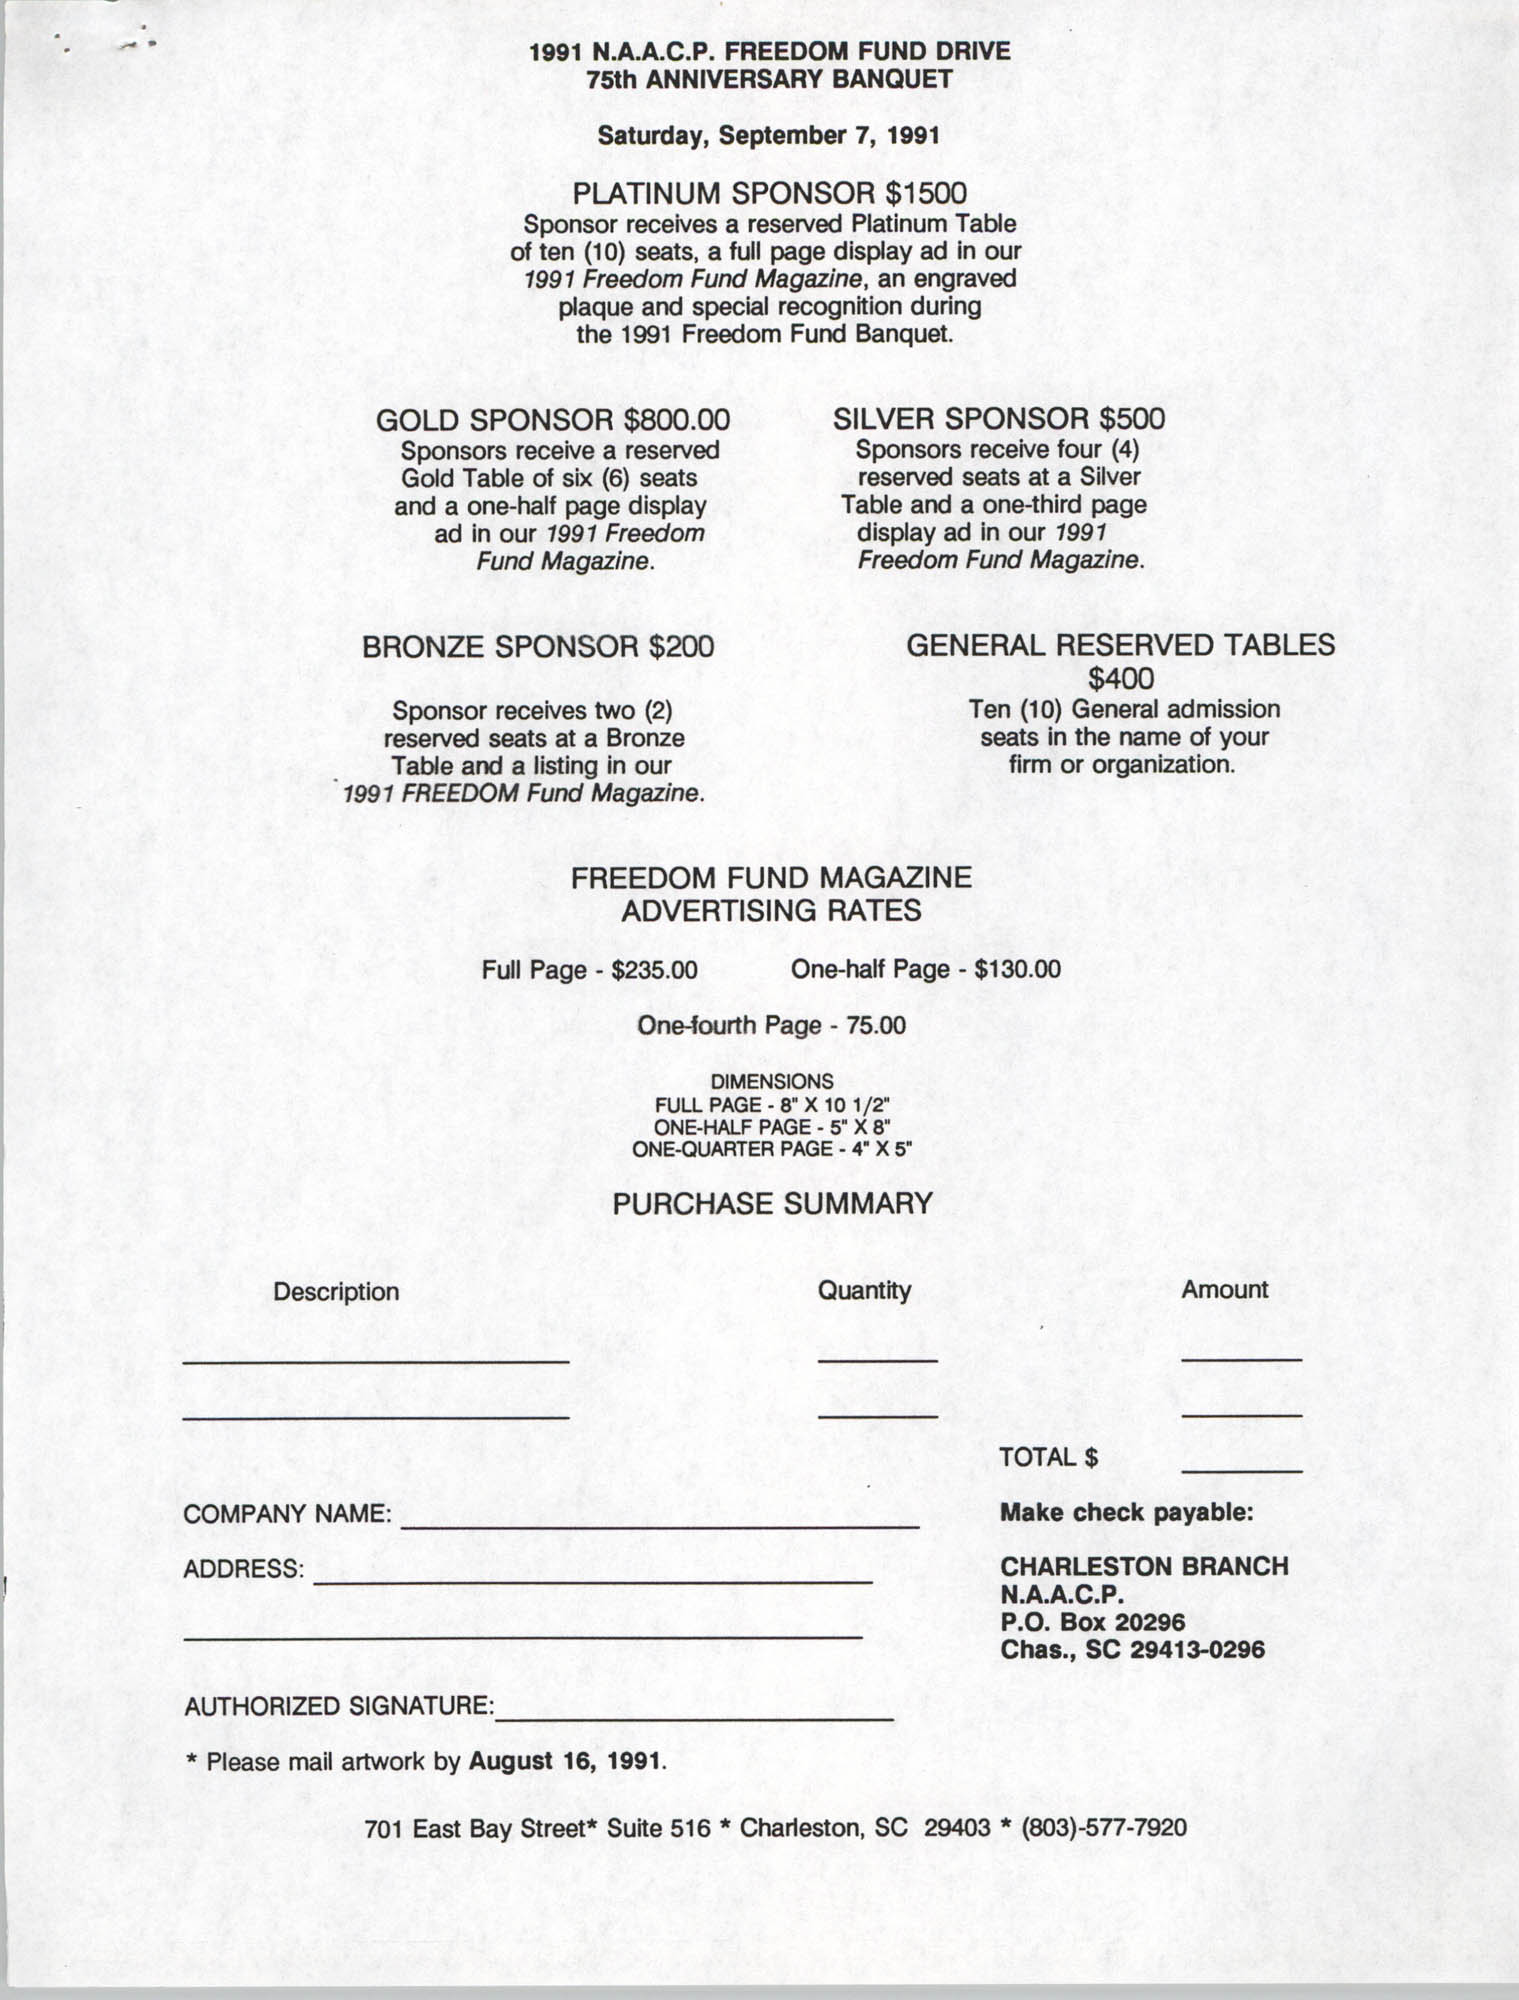 Sponsorship Form, Freedom Fund Drive, Freedom Fund Banquet, National Association for the Advancement of Colored People, 1991